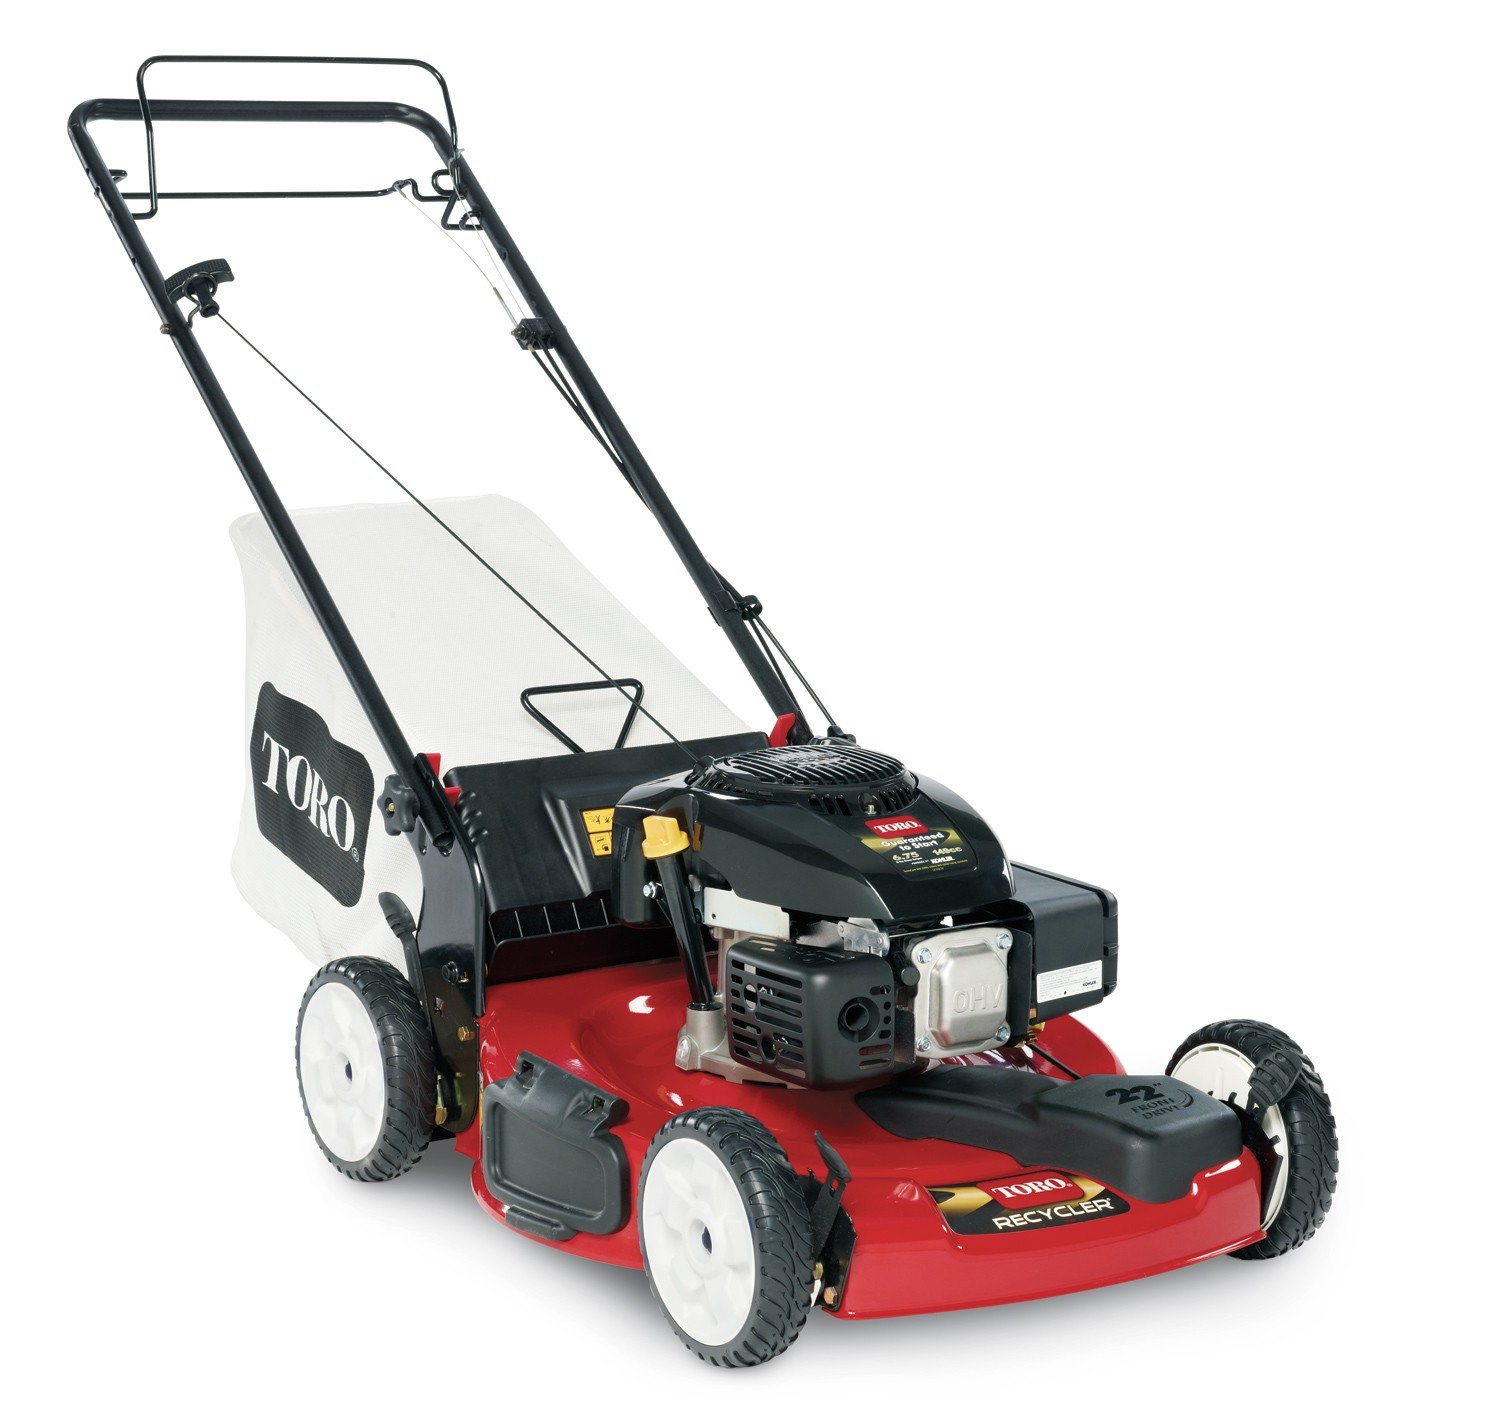 Luxury Home Depot Push Lawn Mowers On Sale Insured By Ross